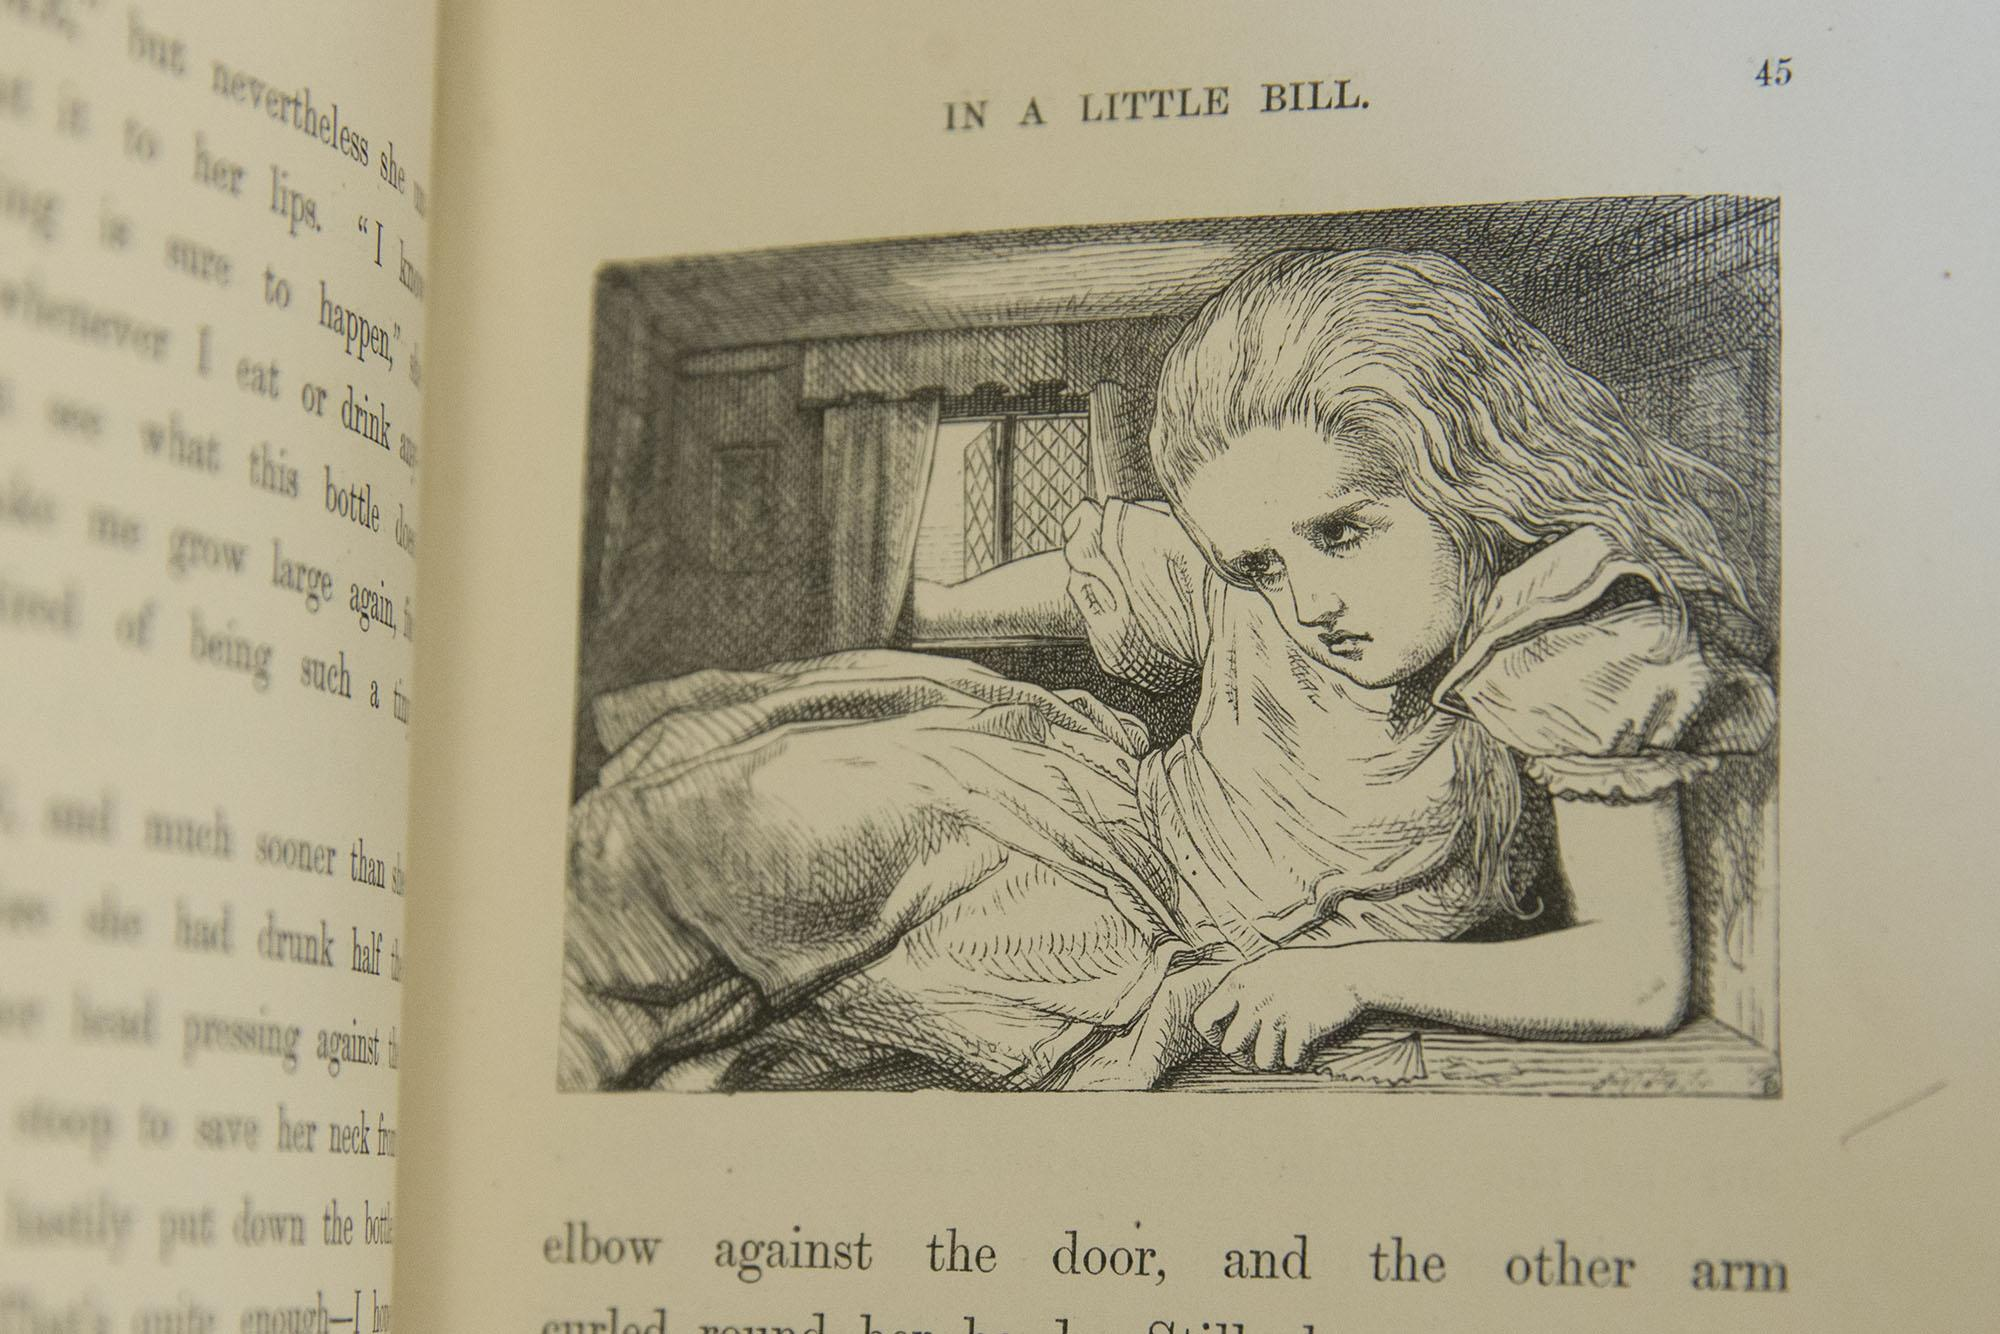 u va joins the celebration of alice at even in old english the original illustrator john tenniel drew alice in a tight spot in a first edition of lewis carroll s alice s adventures in wonderland published in